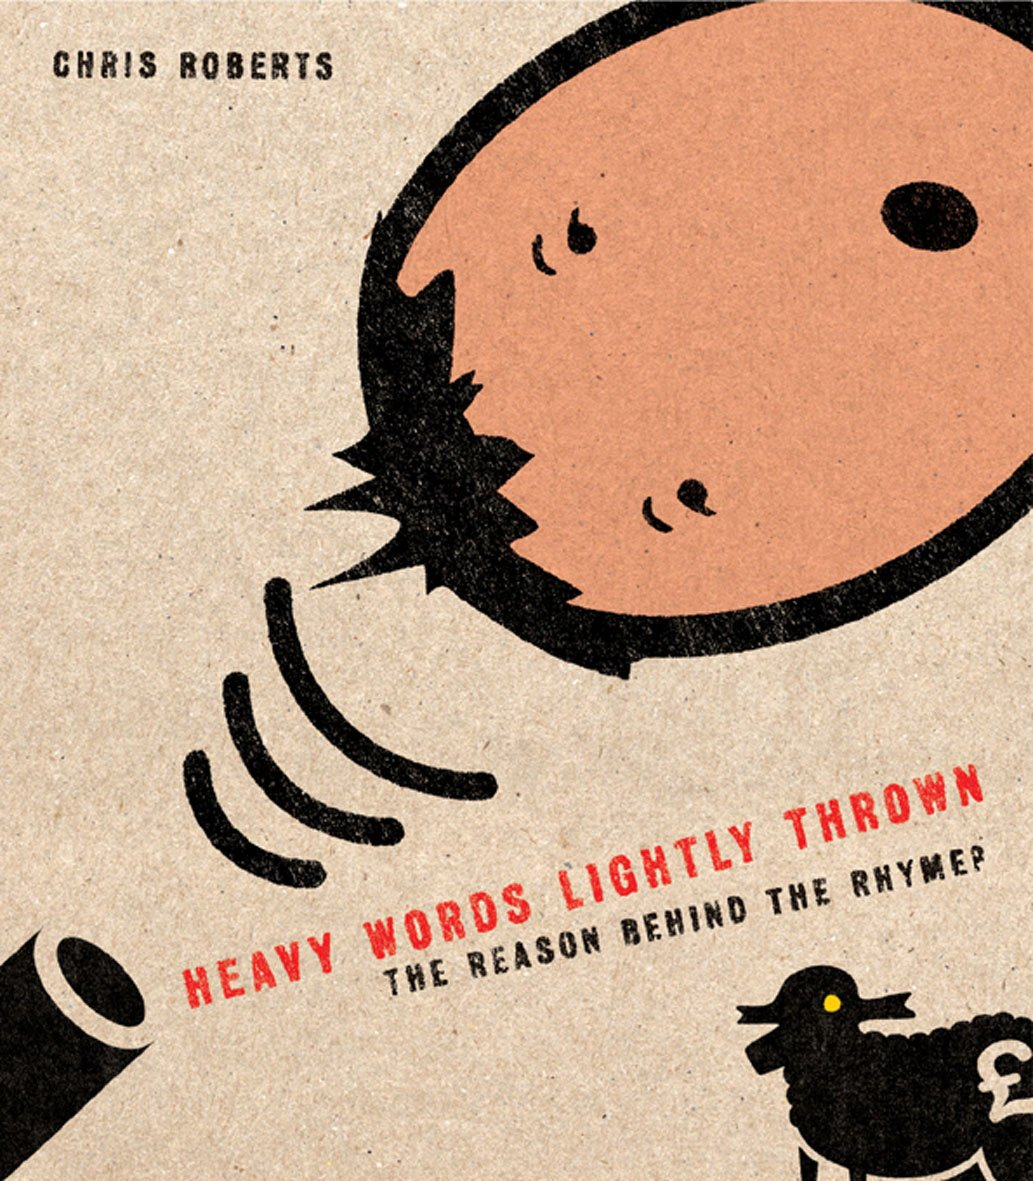 Download Heavy Words Lightly Thrown: the Reason Behind the Rhyme PDF